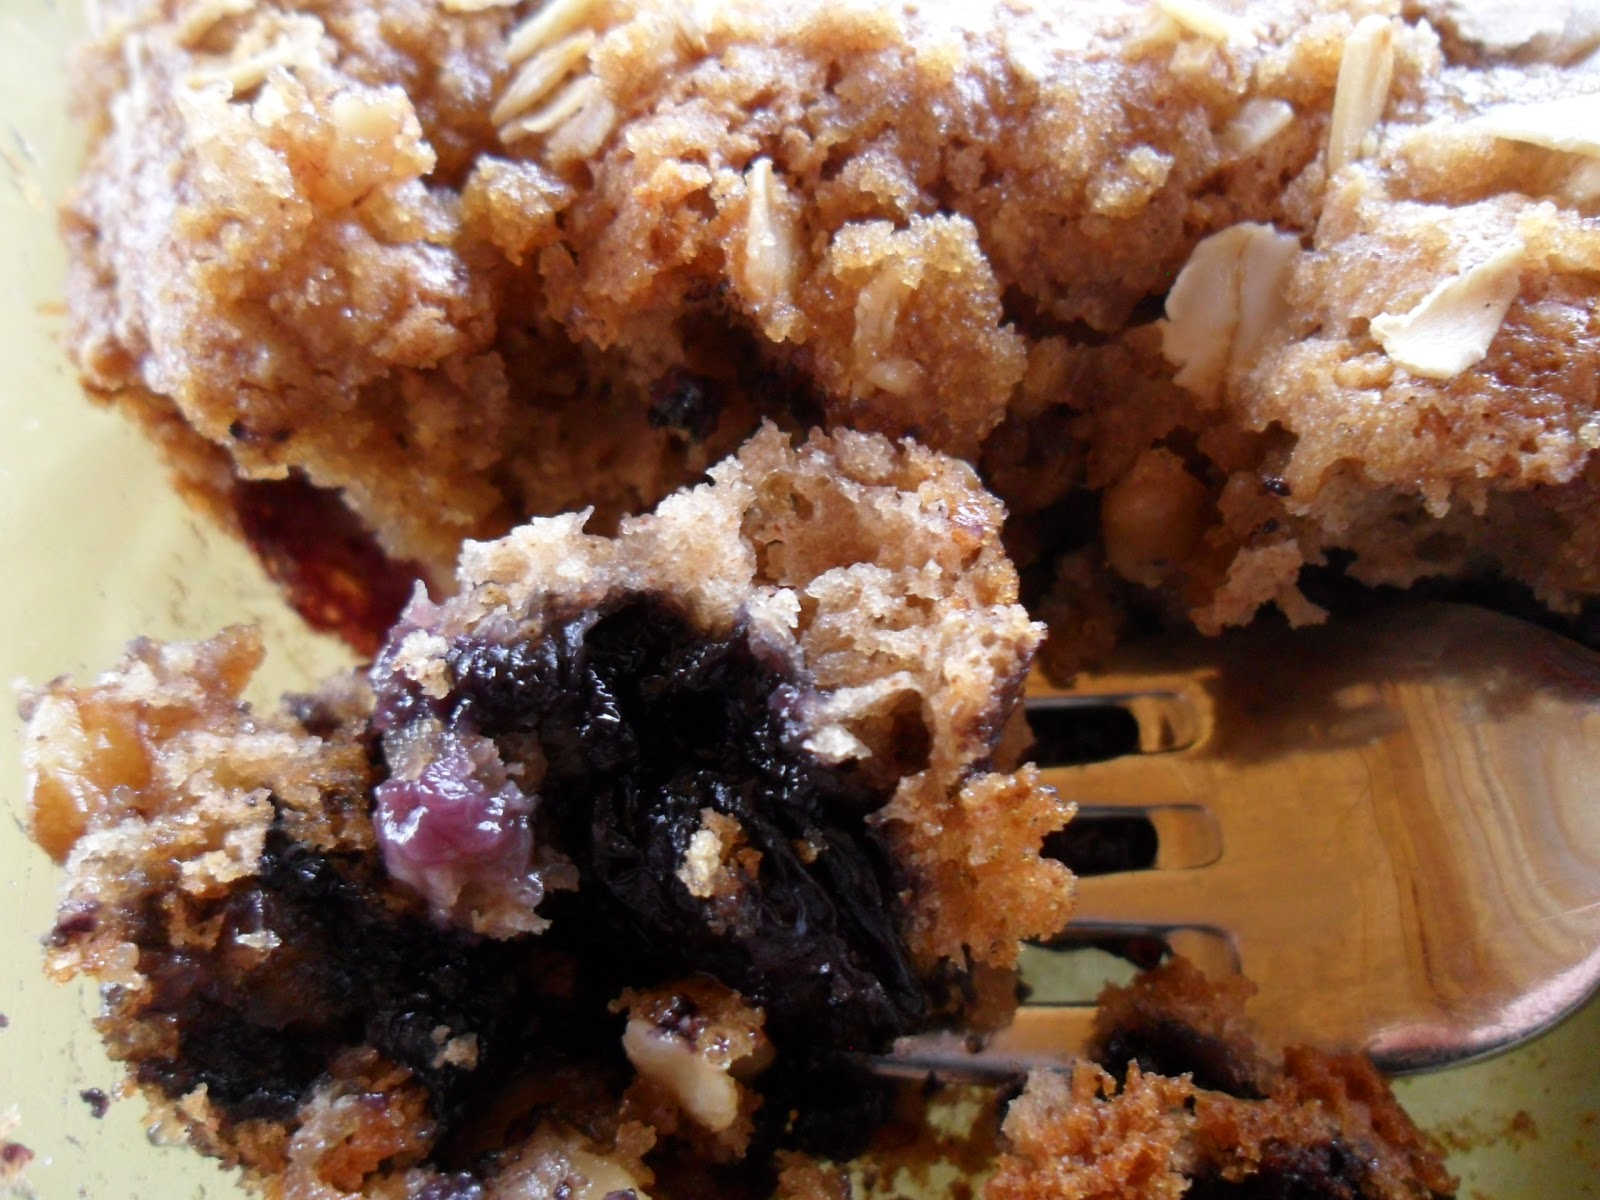 Turnips 2 Tangerines: Blueberry Spice Coffee Cake